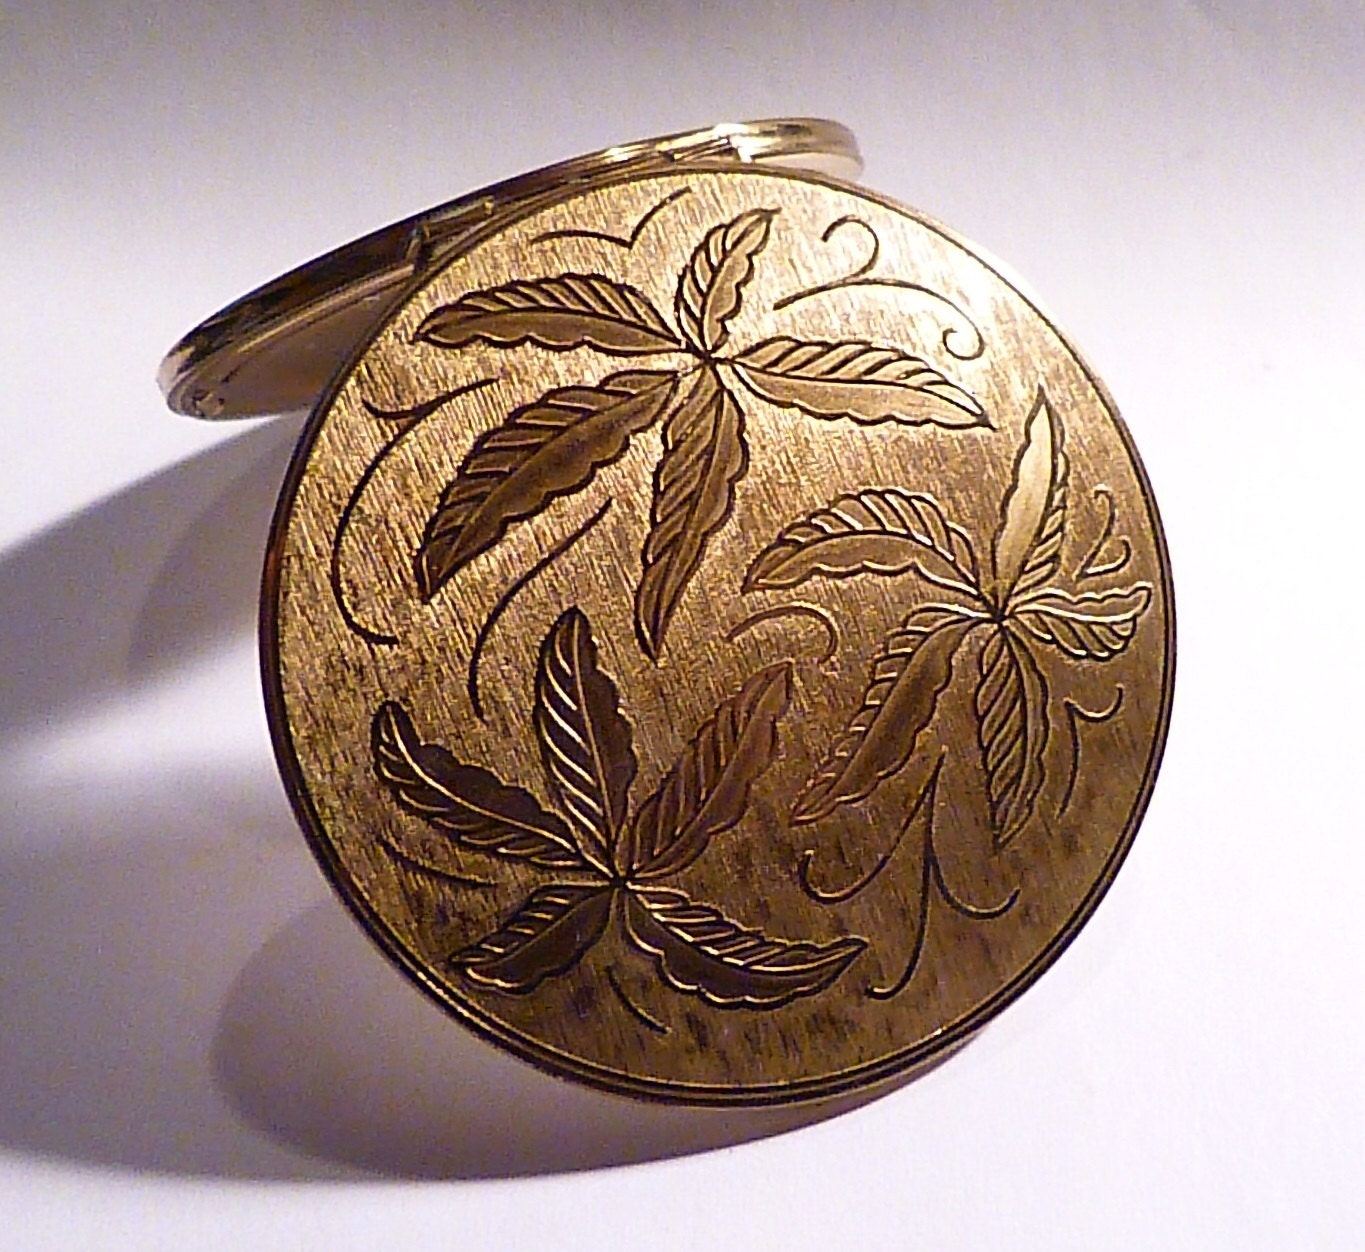 Vintage  compacts Stratton RONDETTE powder compact bridesmaids something old presents